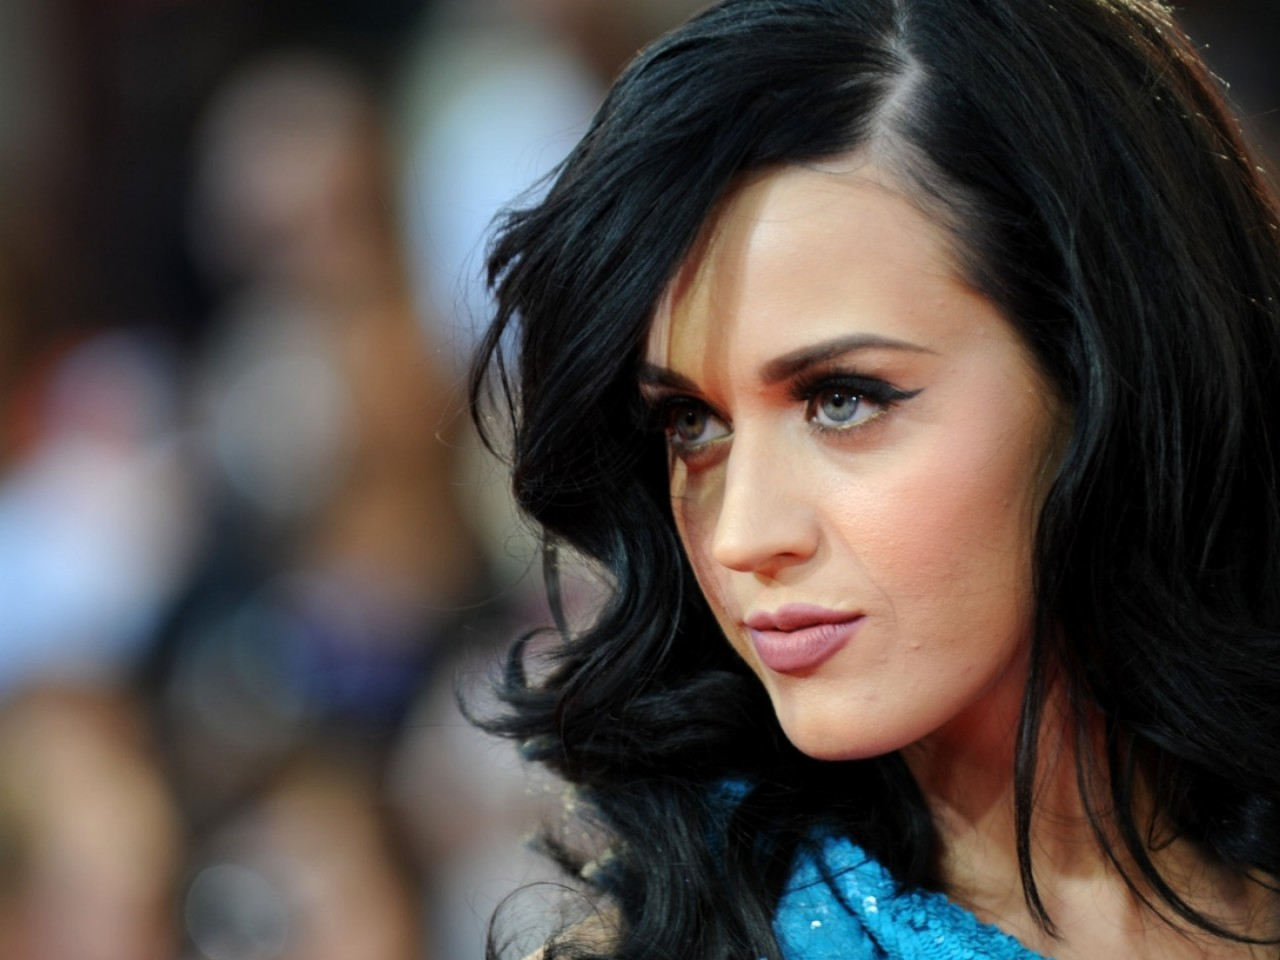 Katy Perry Face Wallpaper Hd Wallpapers